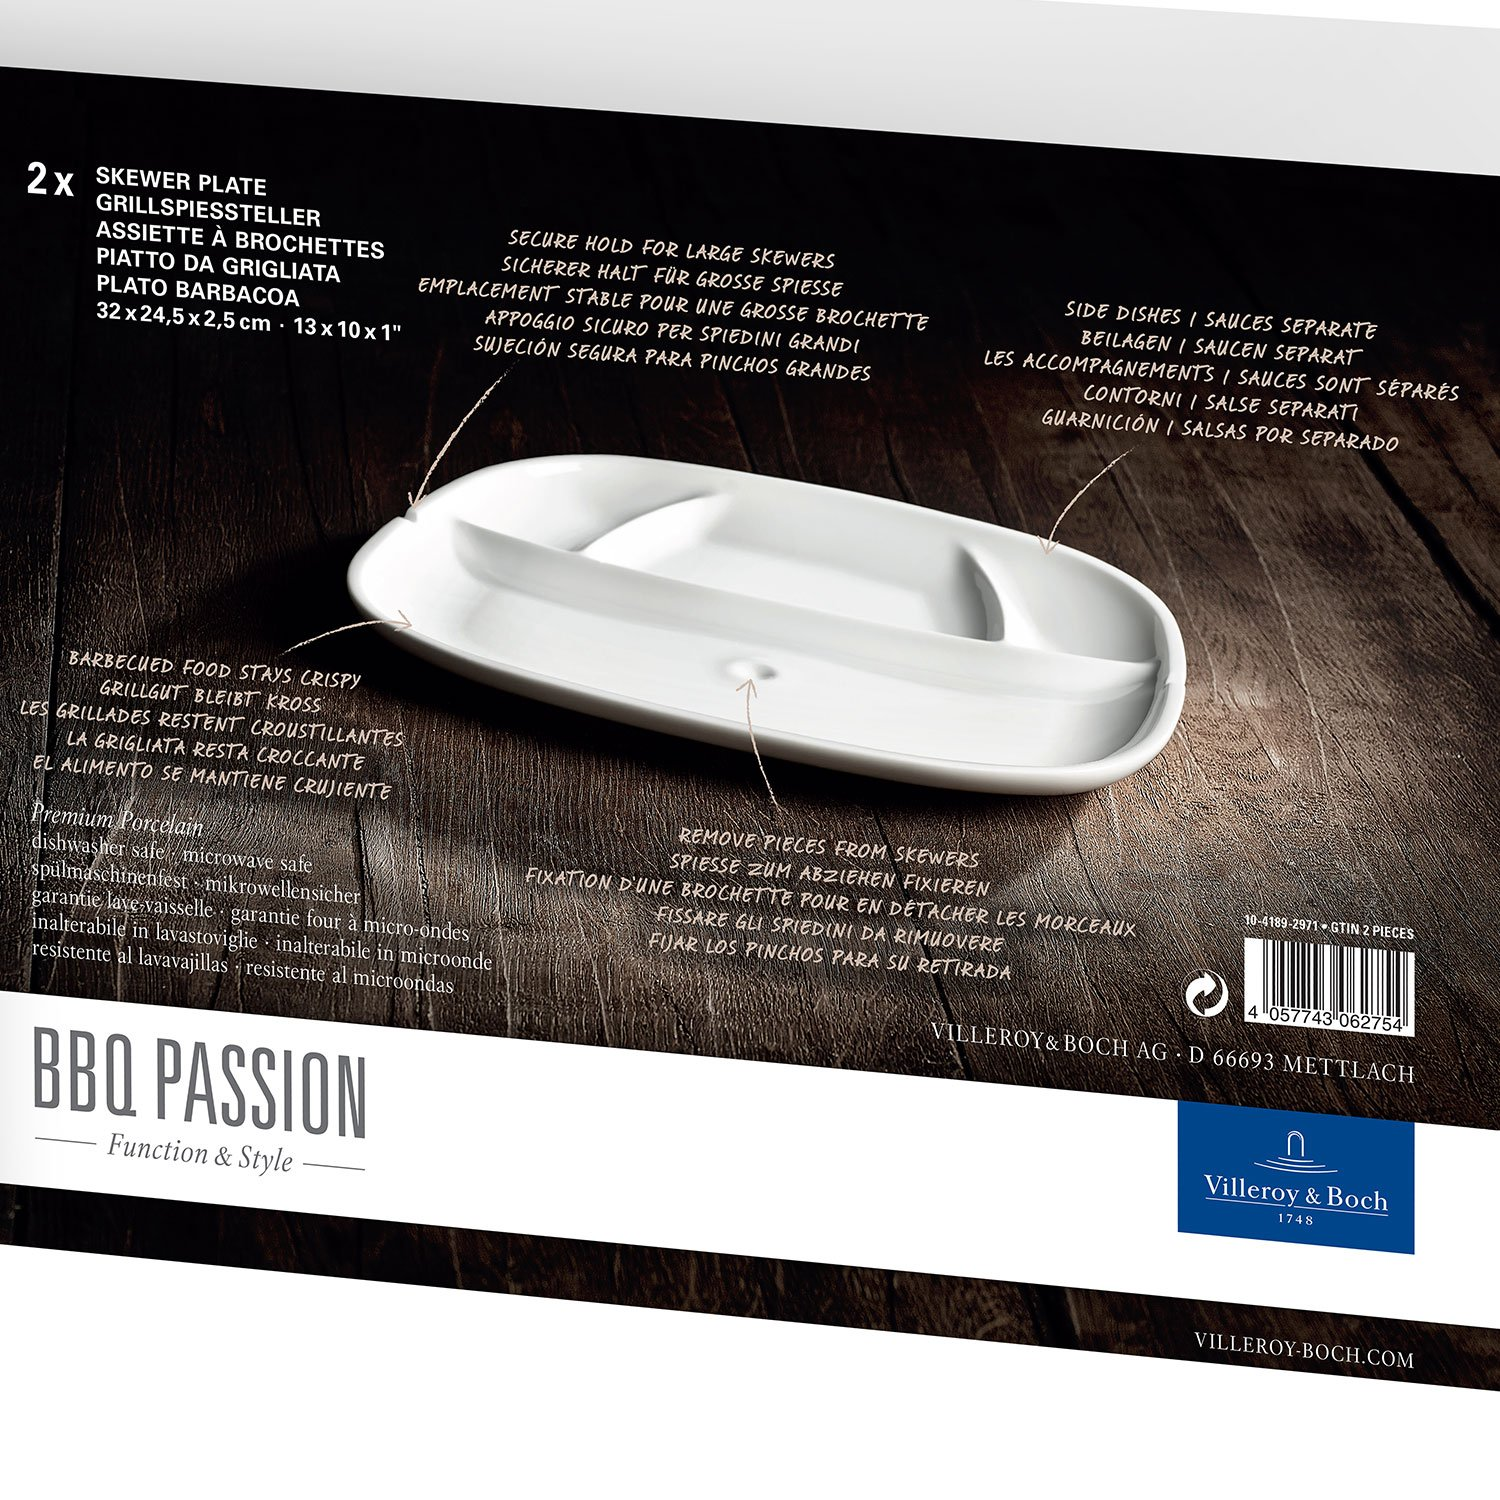 Amazon.com | BBQ Passion Skewer Plate Set of 2 by Villeroy & Boch - Premium Porcelain - Made in Germany - Dishwasher and Microwave Safe - 12.5 x 9.5 Inches: ...